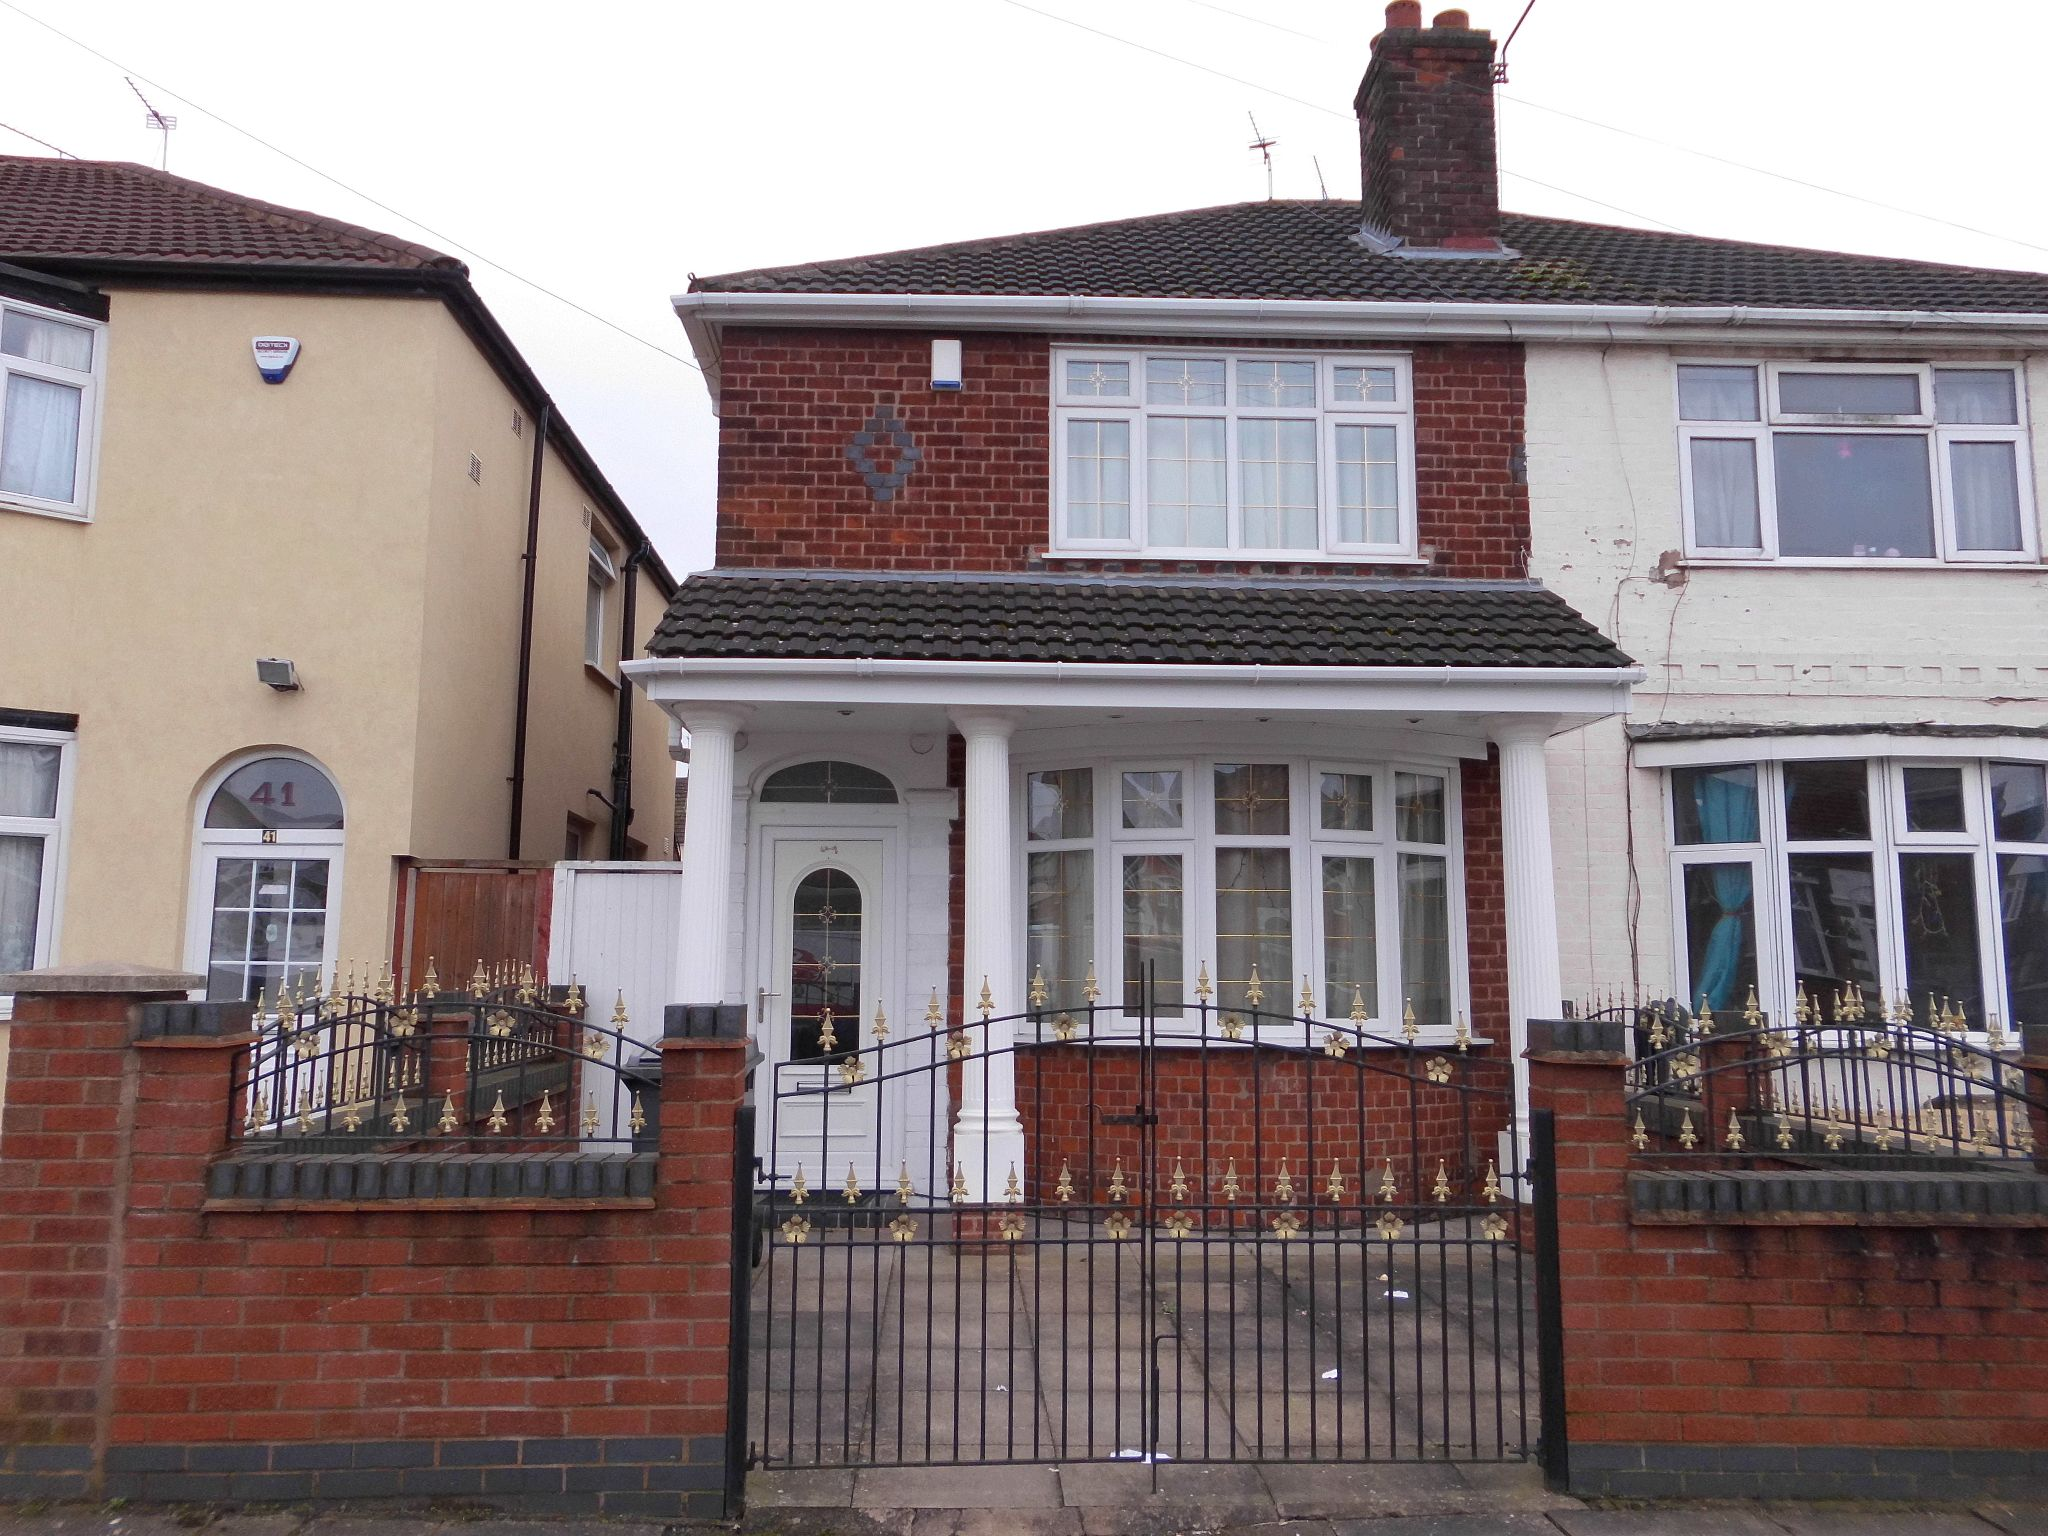 3 Bedroom Semi-detached House To Let 39 Purley Road Main Image